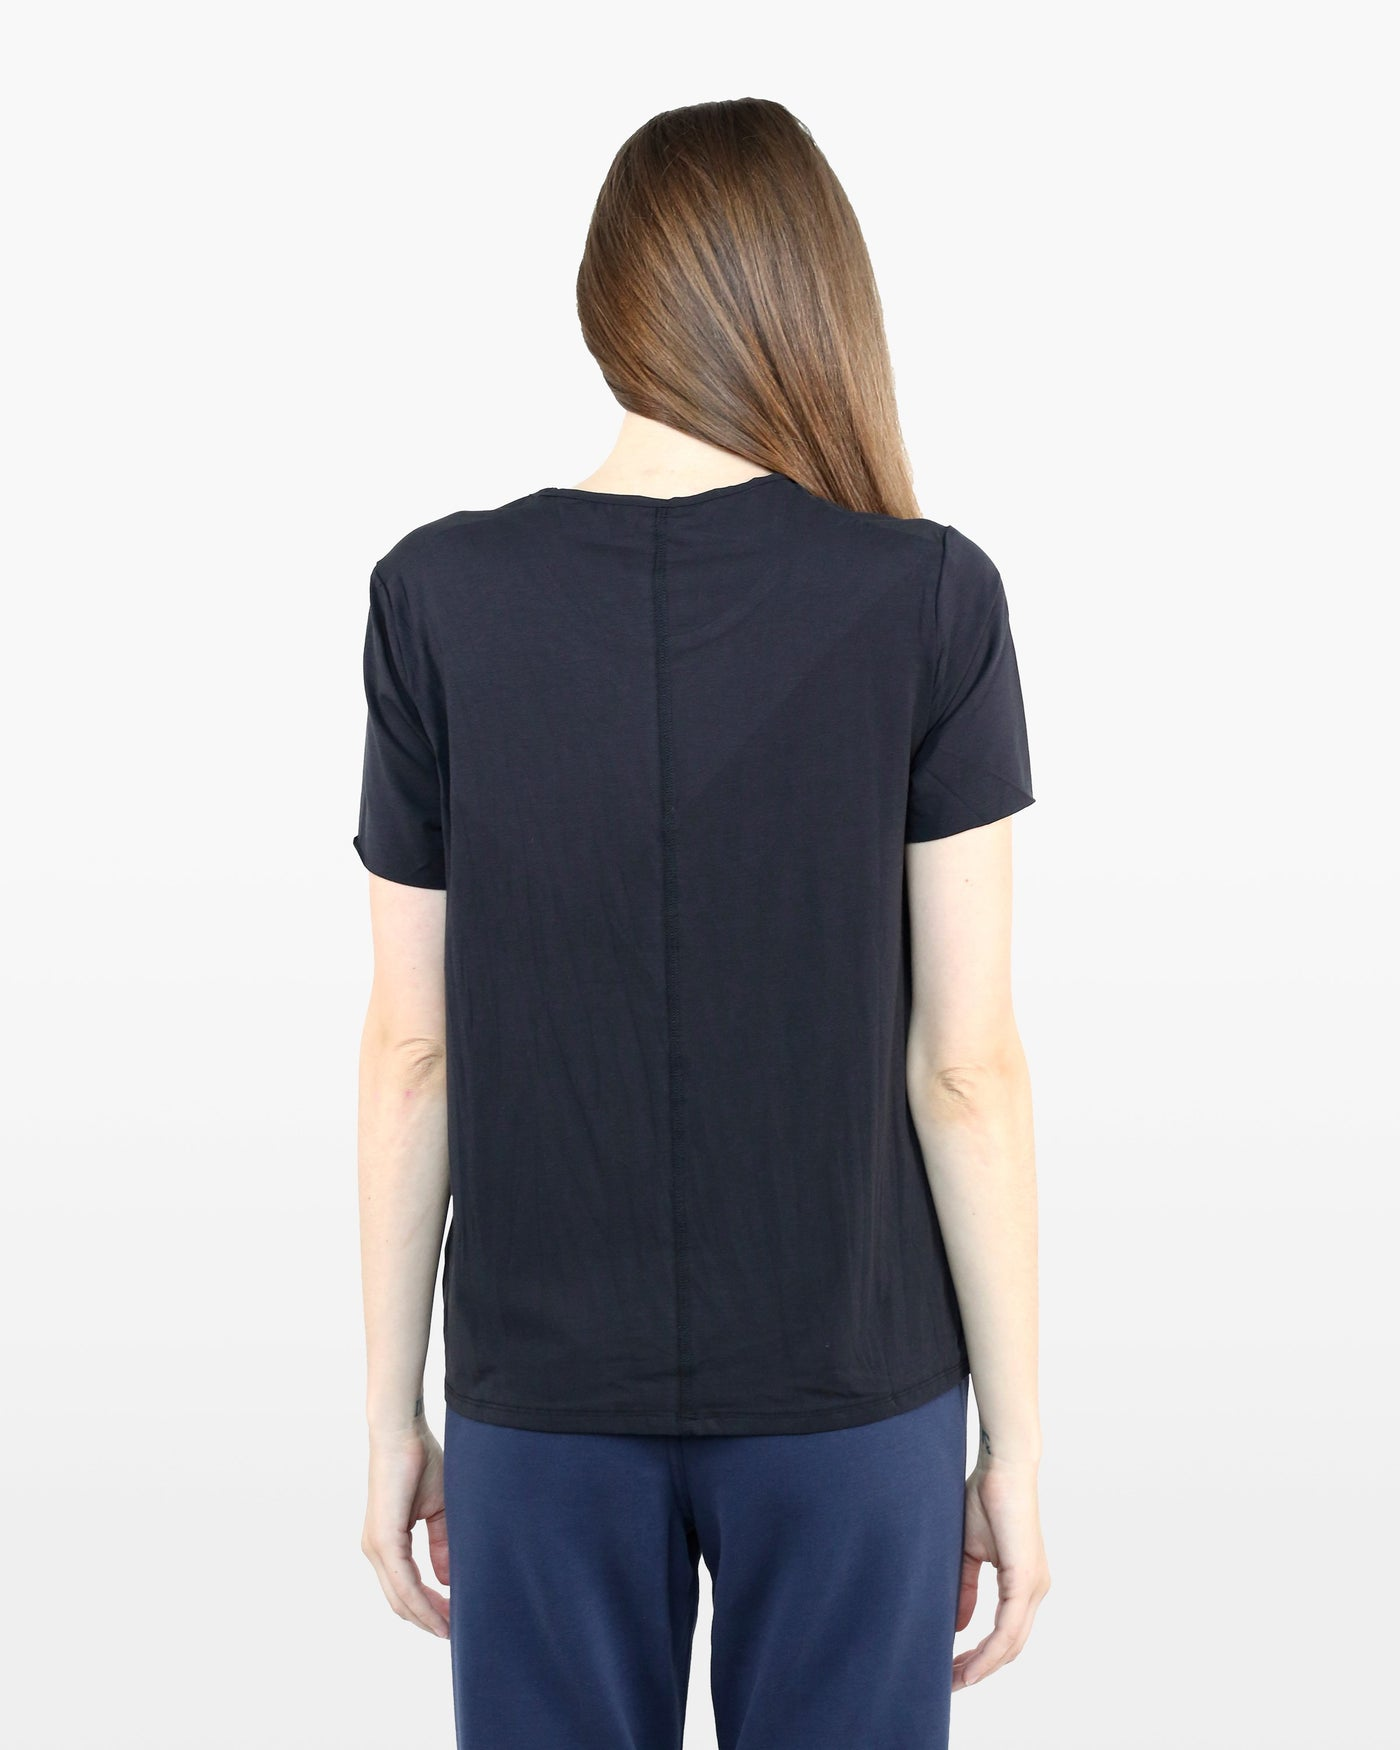 Avery Tee STJ in black